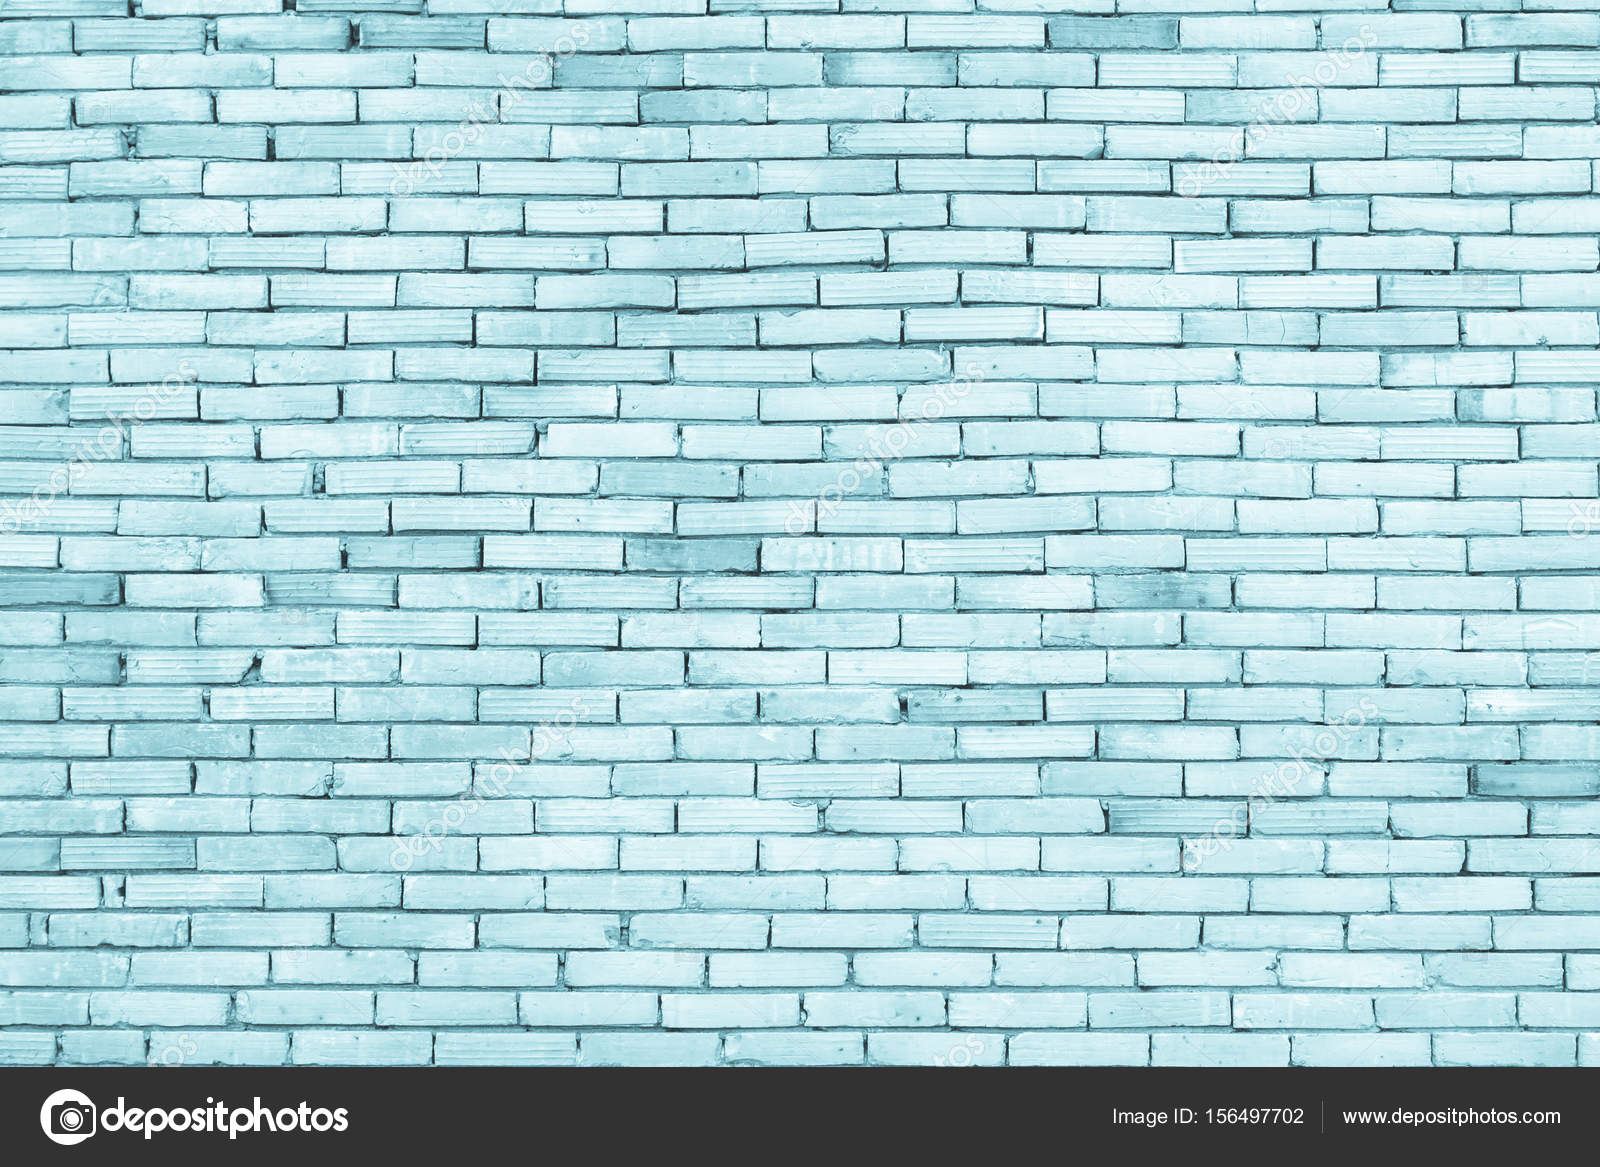 Blue Brick Wall Texture Background Wallpaper Abstract Paint Photo By Phokin2516gmail